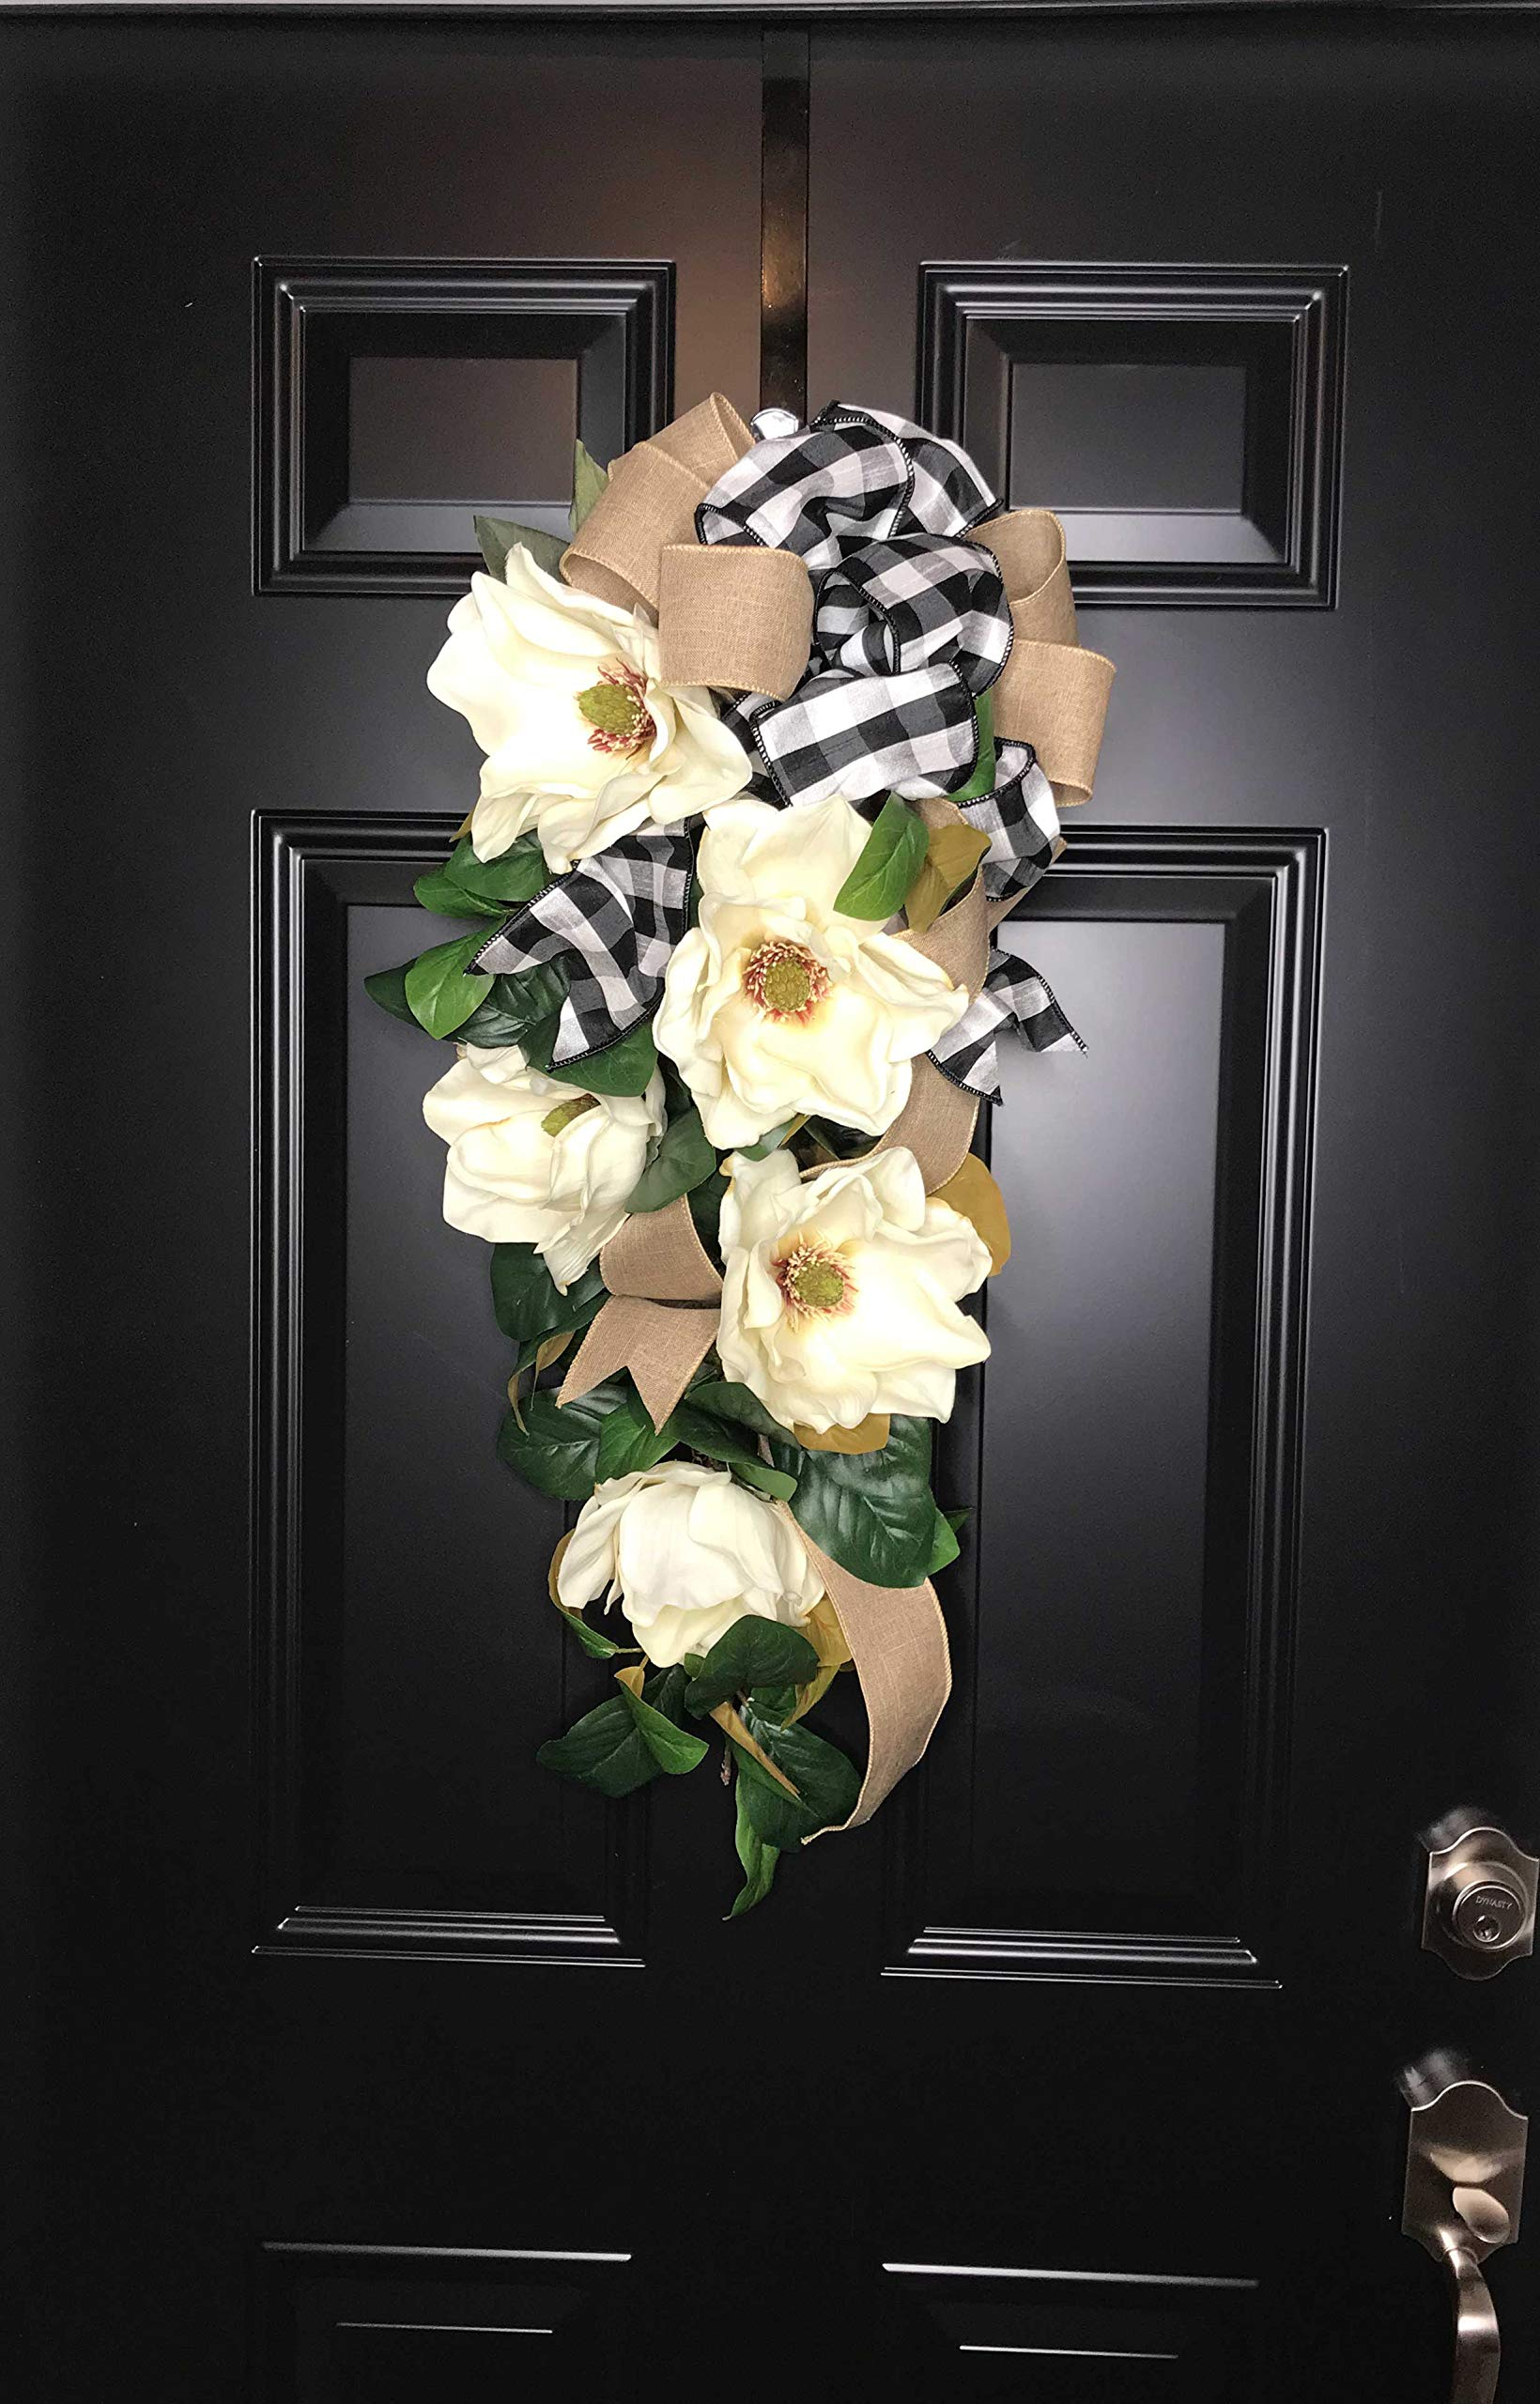 Large Southern Magnolia Teardrop Floral Swag Wreath w/Buffalo Plaid/Check Bow for Front Door Porch Indoor Wall Farmhouse Decor Spring Springtime Summer Summertime Year Round, Handmade, 30''L x 18'' W by Wreath and Vine, LLC (Image #2)